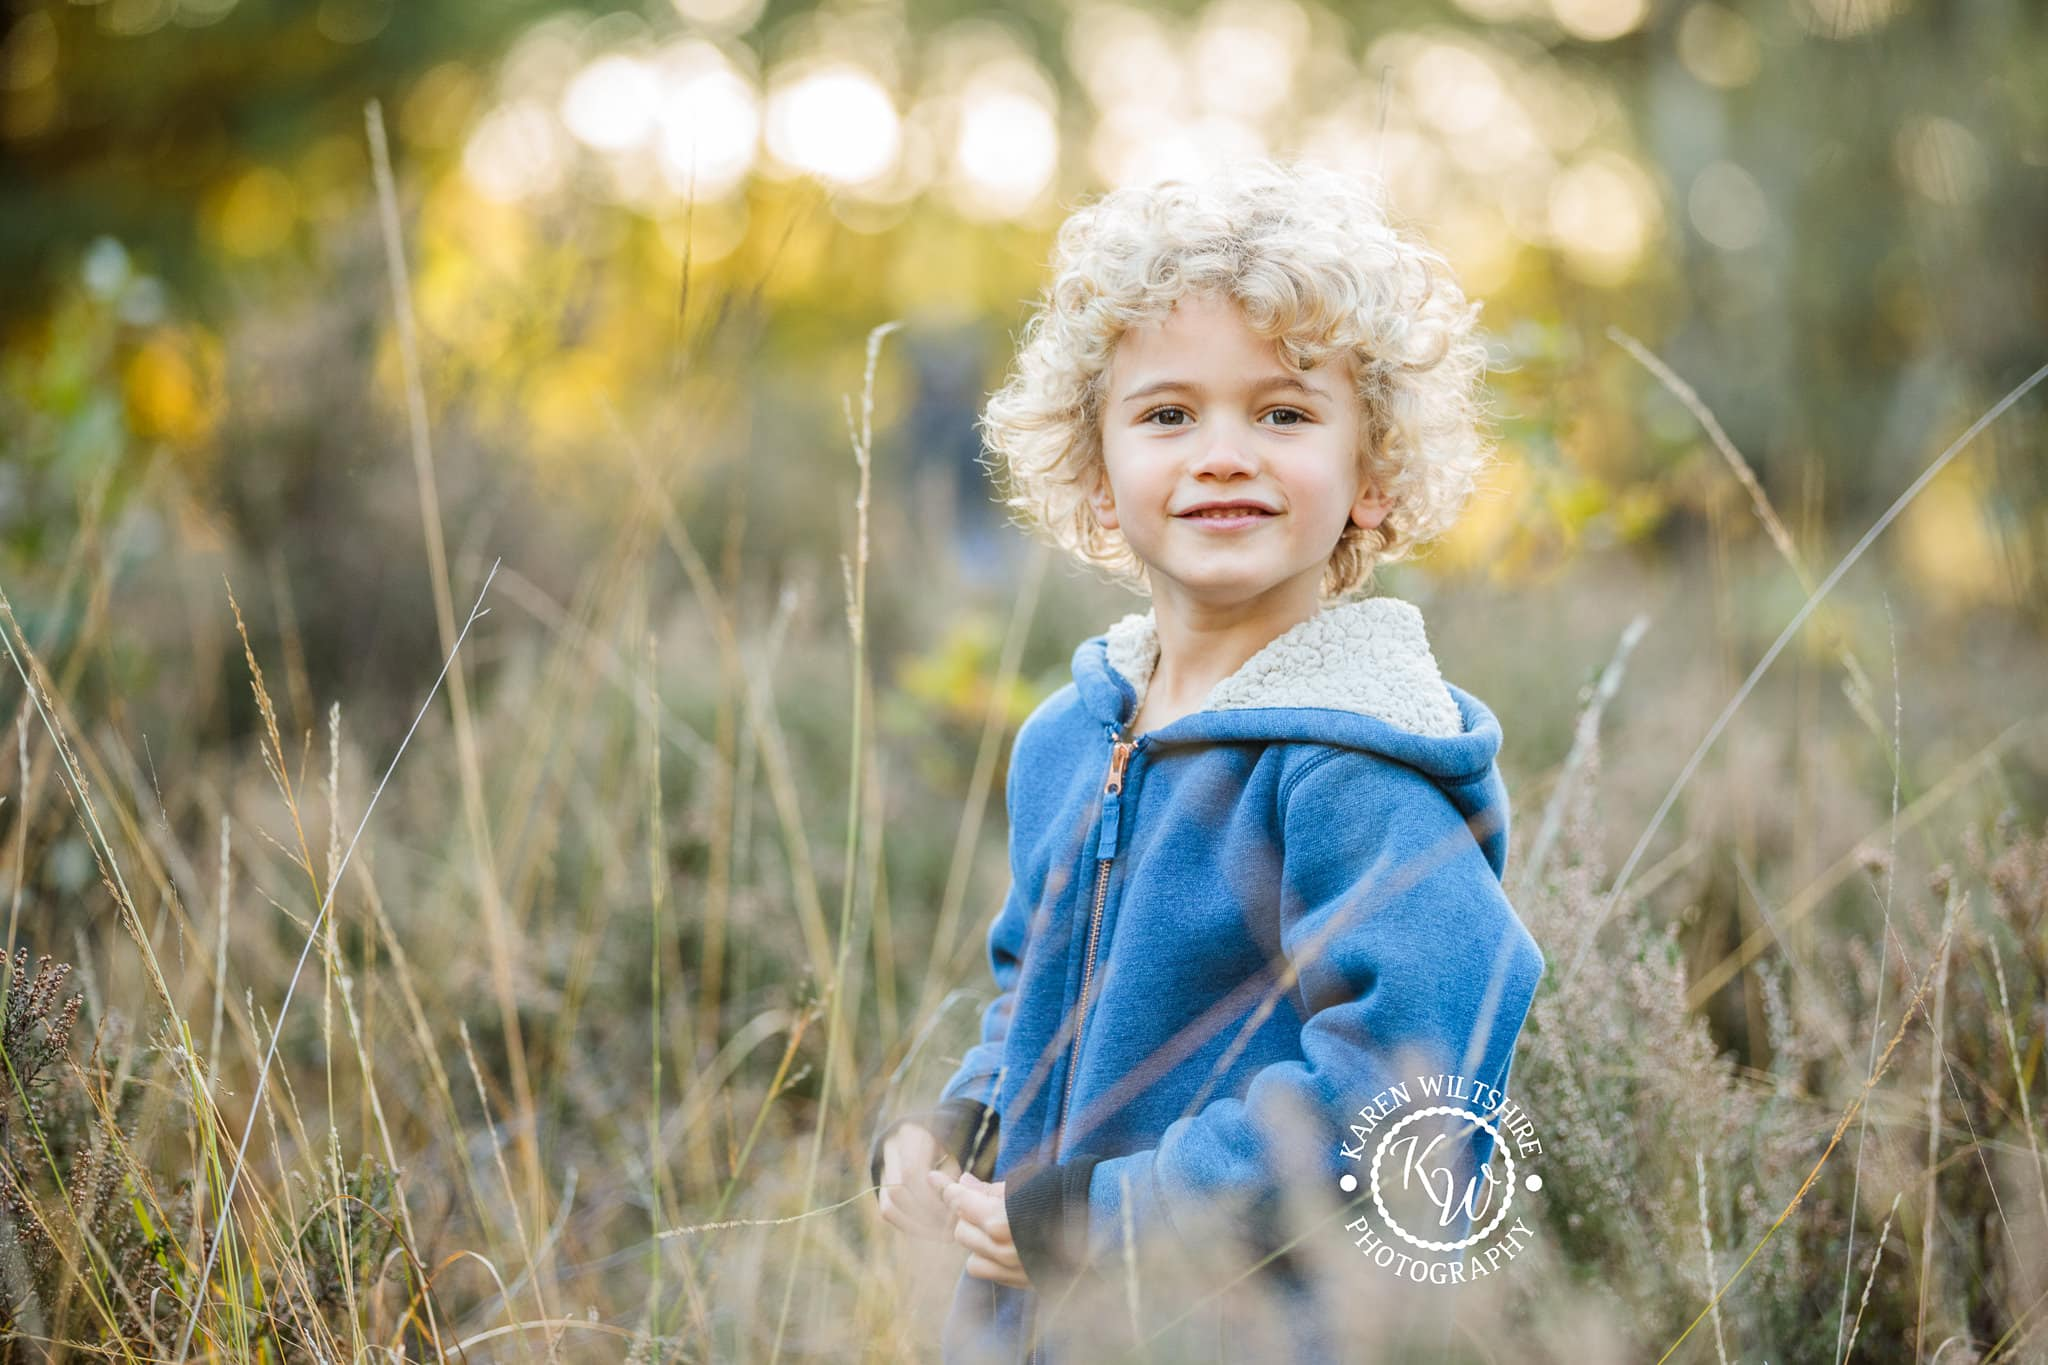 Young boy in long grass smiling for the camera